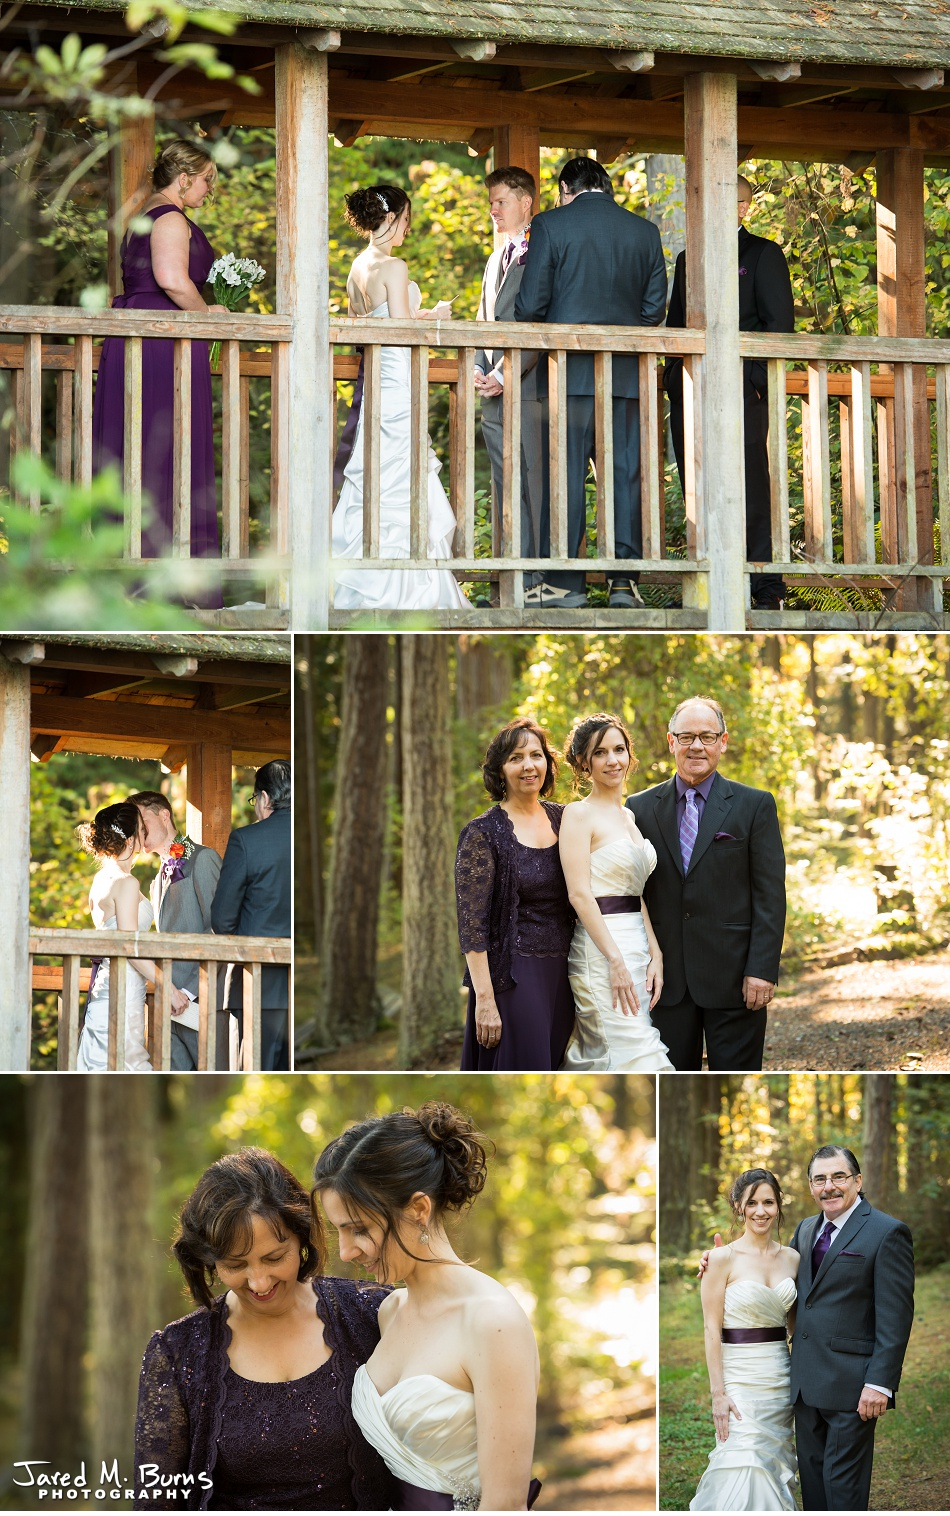 Kyle & Stephanie - Echo Falls and Washington Ferry Wedding Photographer - Jared M. Burns Photography 4